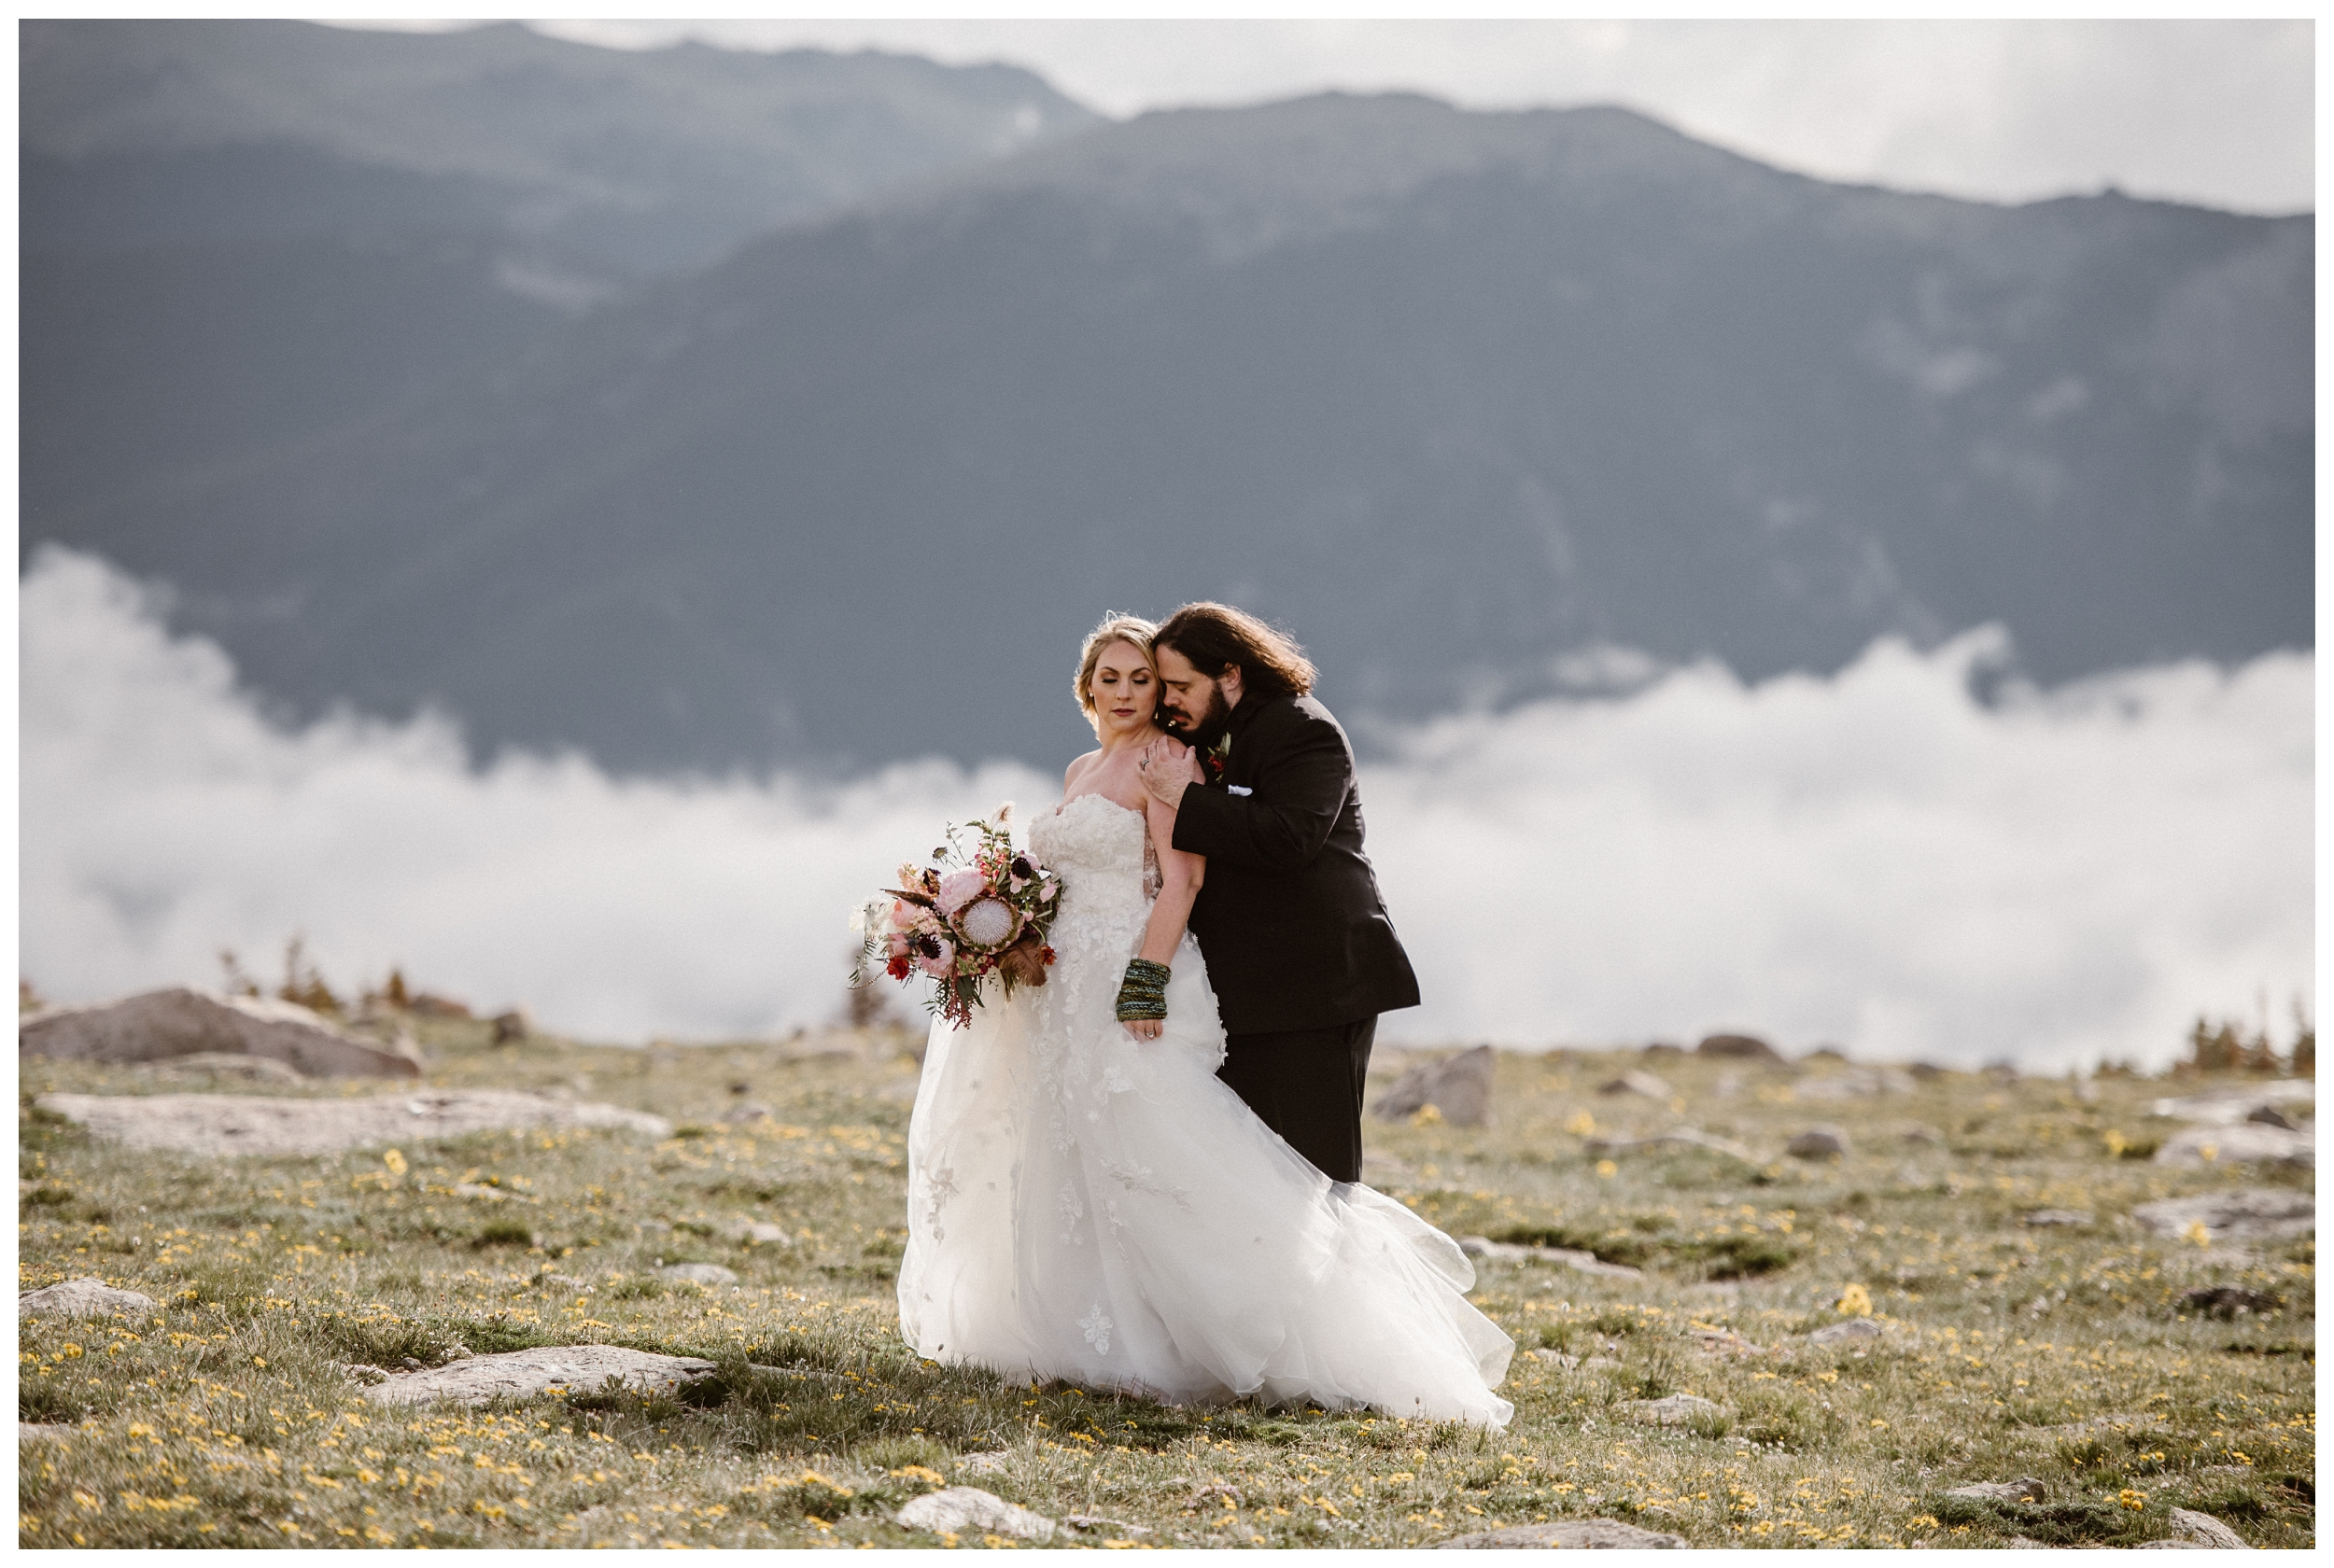 The clouds roll in for an impressive display of cloud inversion at high altitude during Alicia and Zach's couples portraits before their intimate elopement ceremony at Rocky Mountain National Park. Photo by Adventure Instead, Maddie Mae.